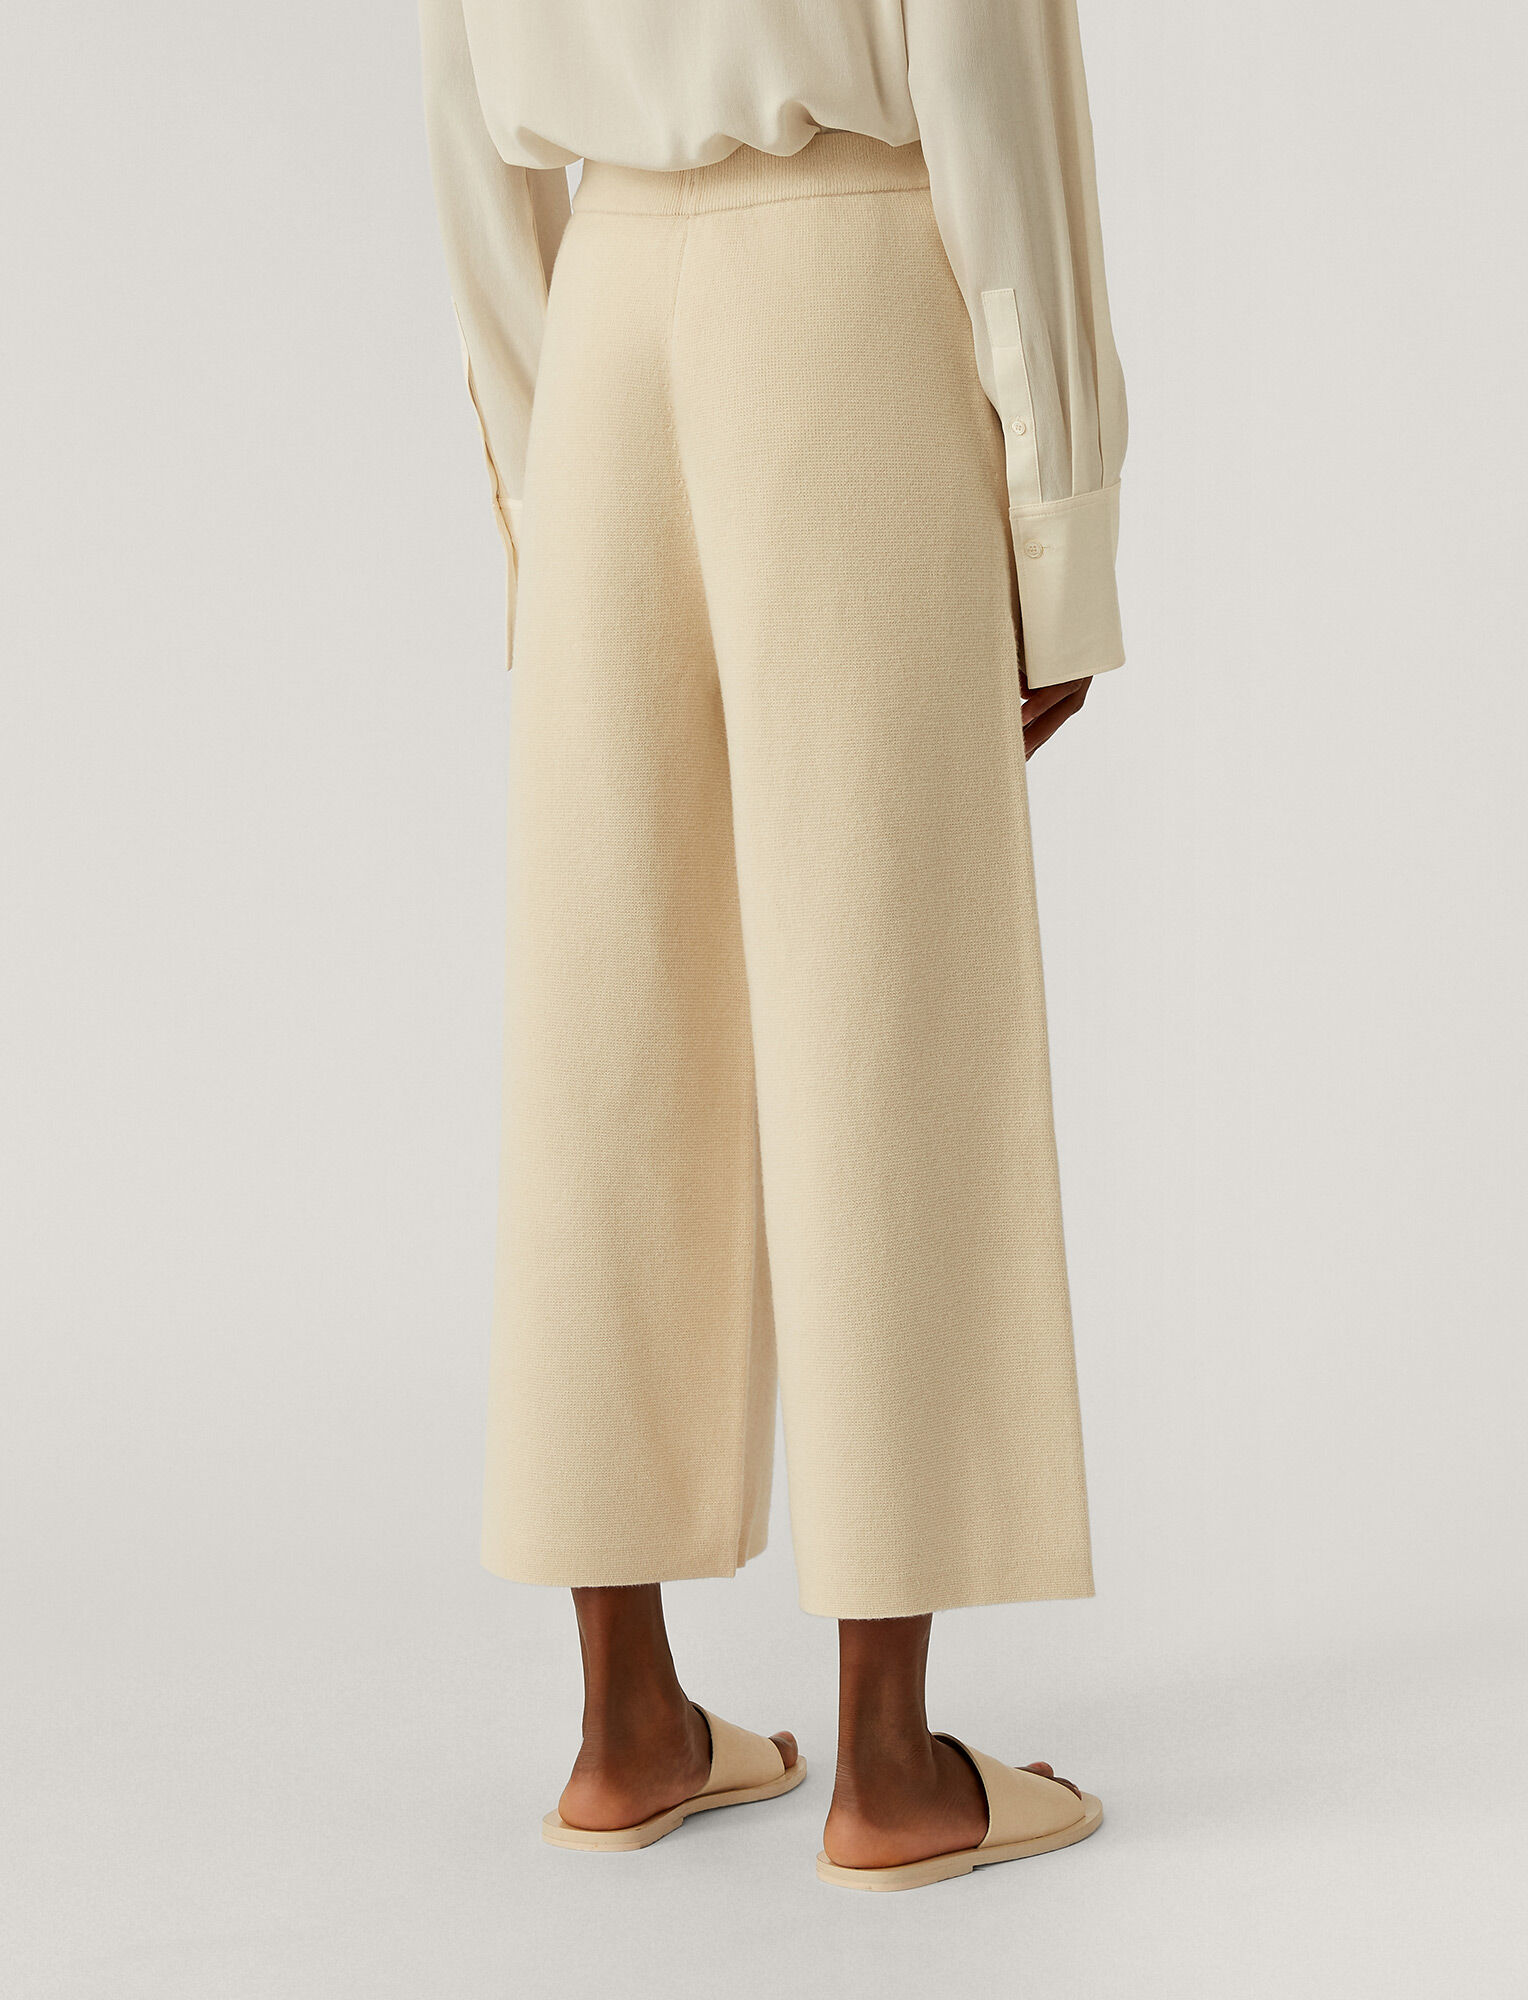 Joseph,  Soft Wool Trousers, in Ivory